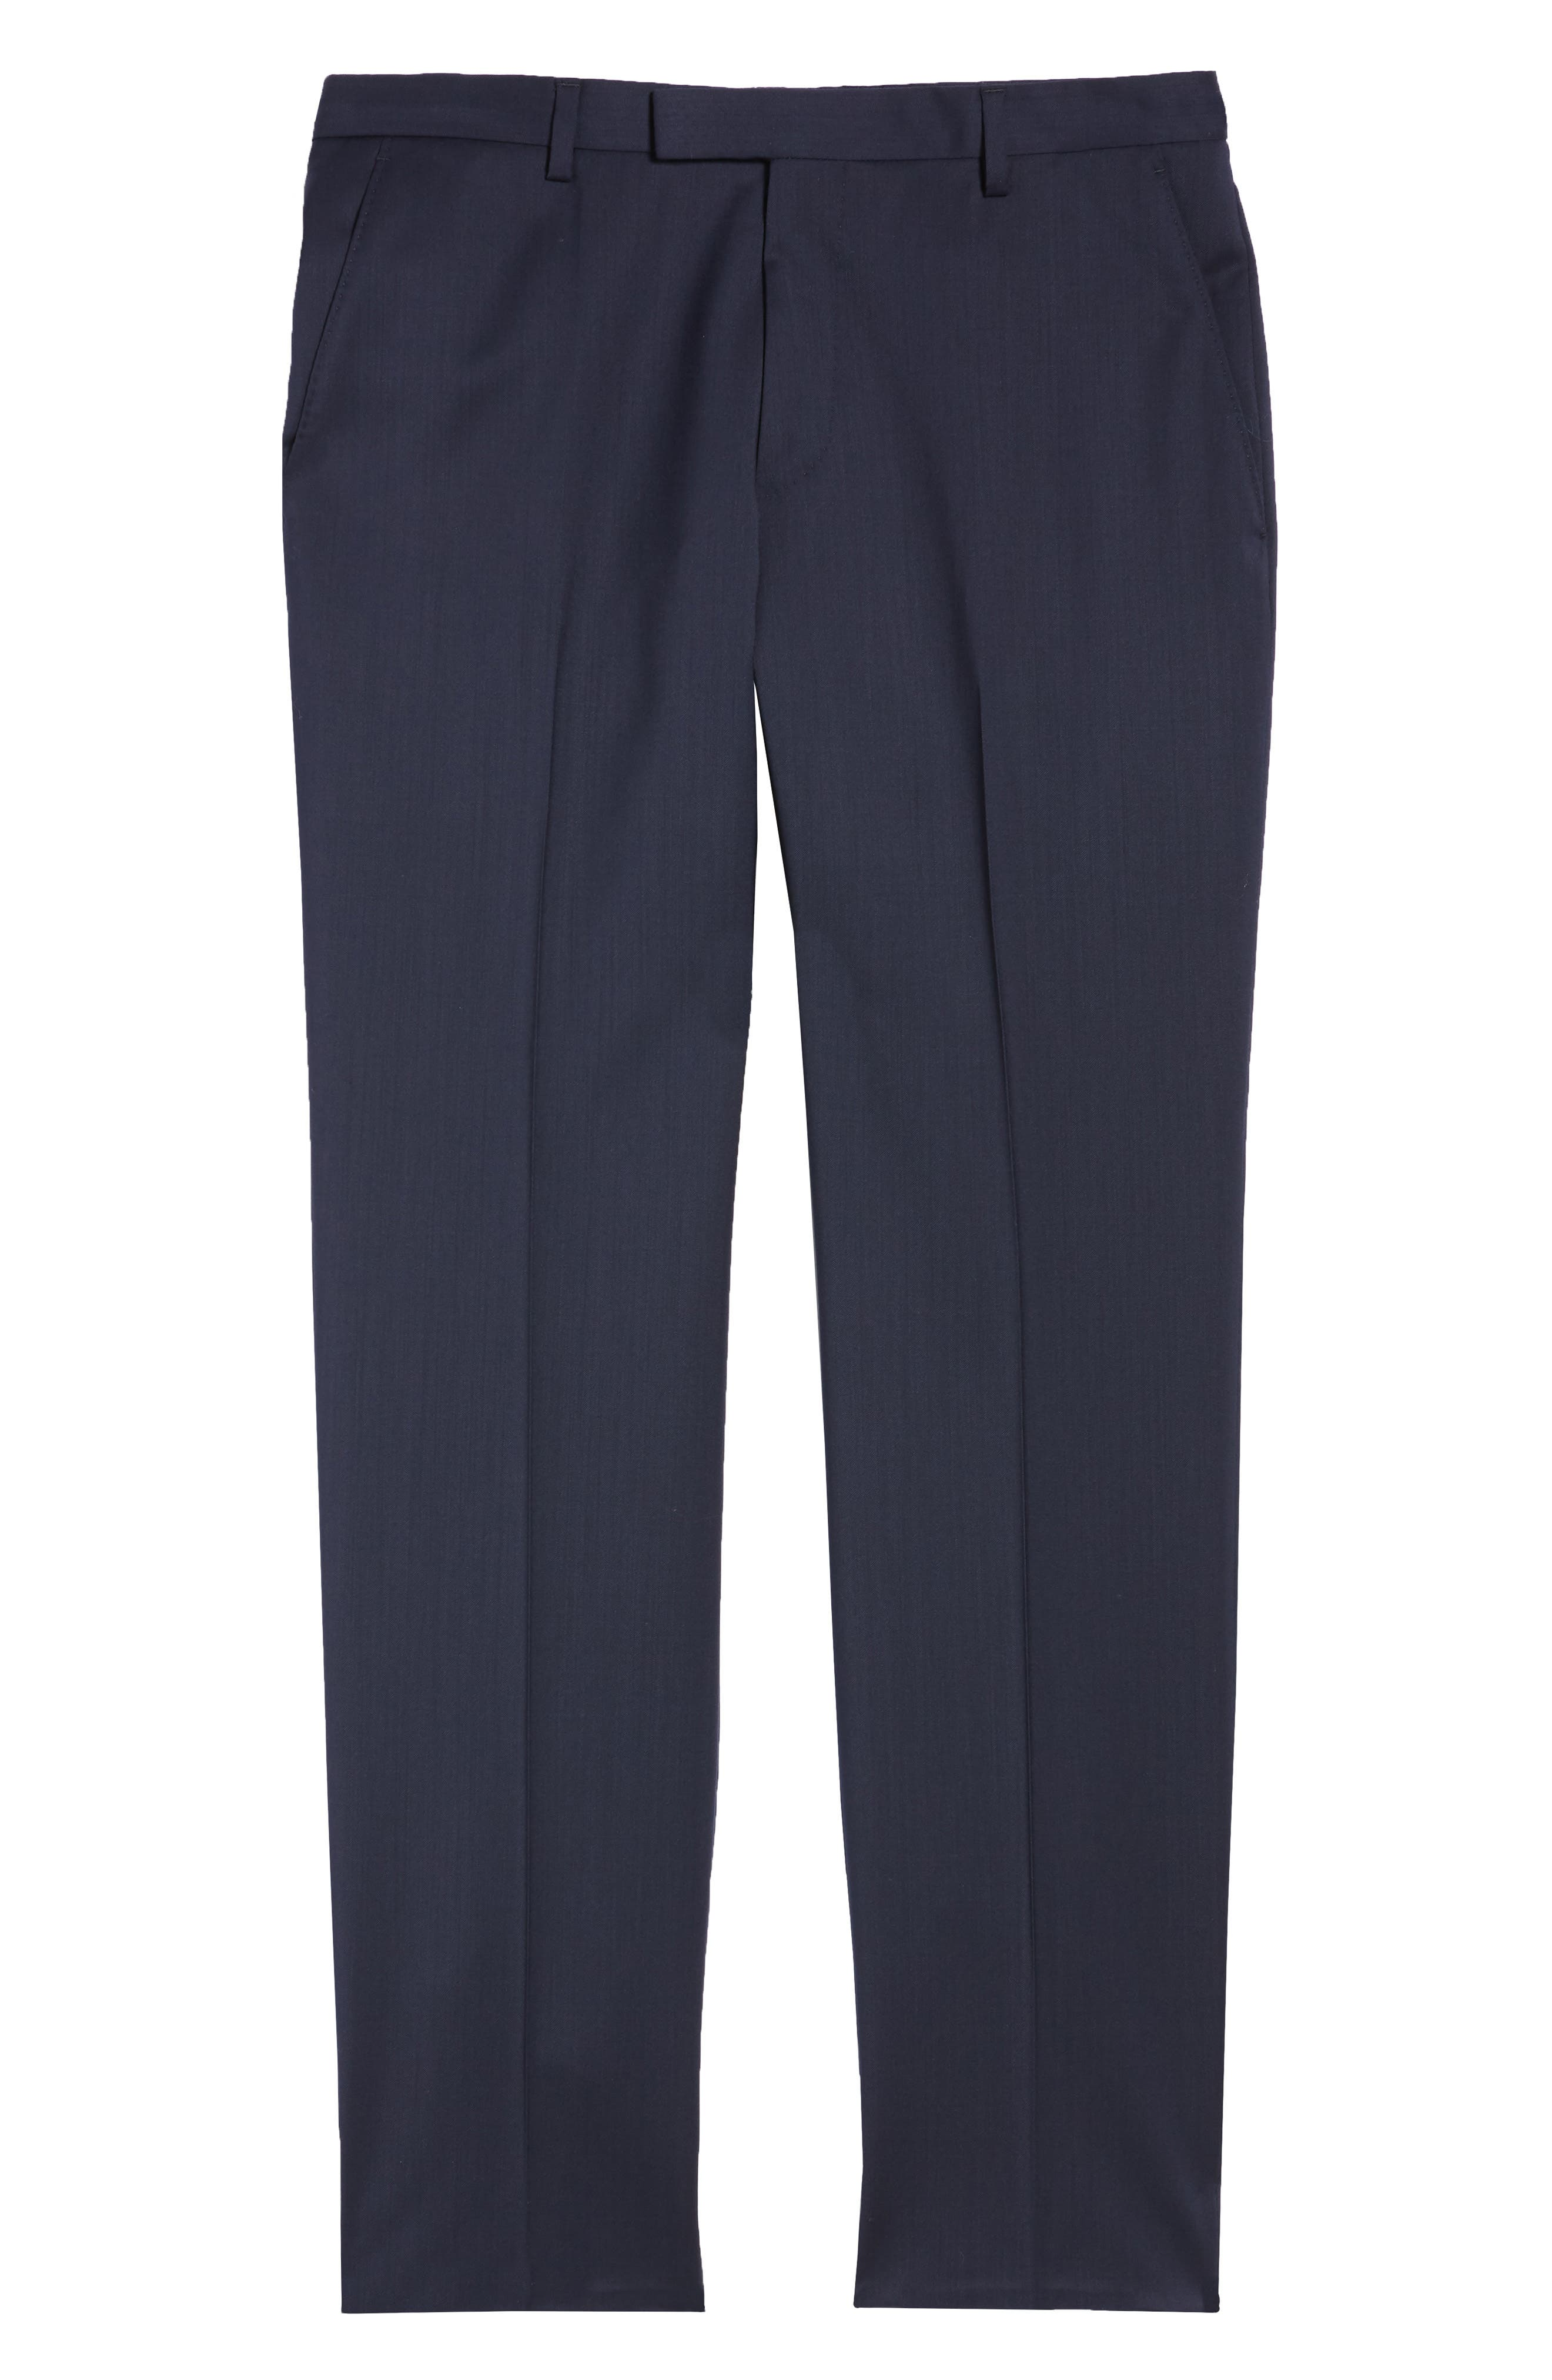 Leenon Flat Front Regular Fit Solid Wool Trousers,                             Alternate thumbnail 6, color,                             NAVY